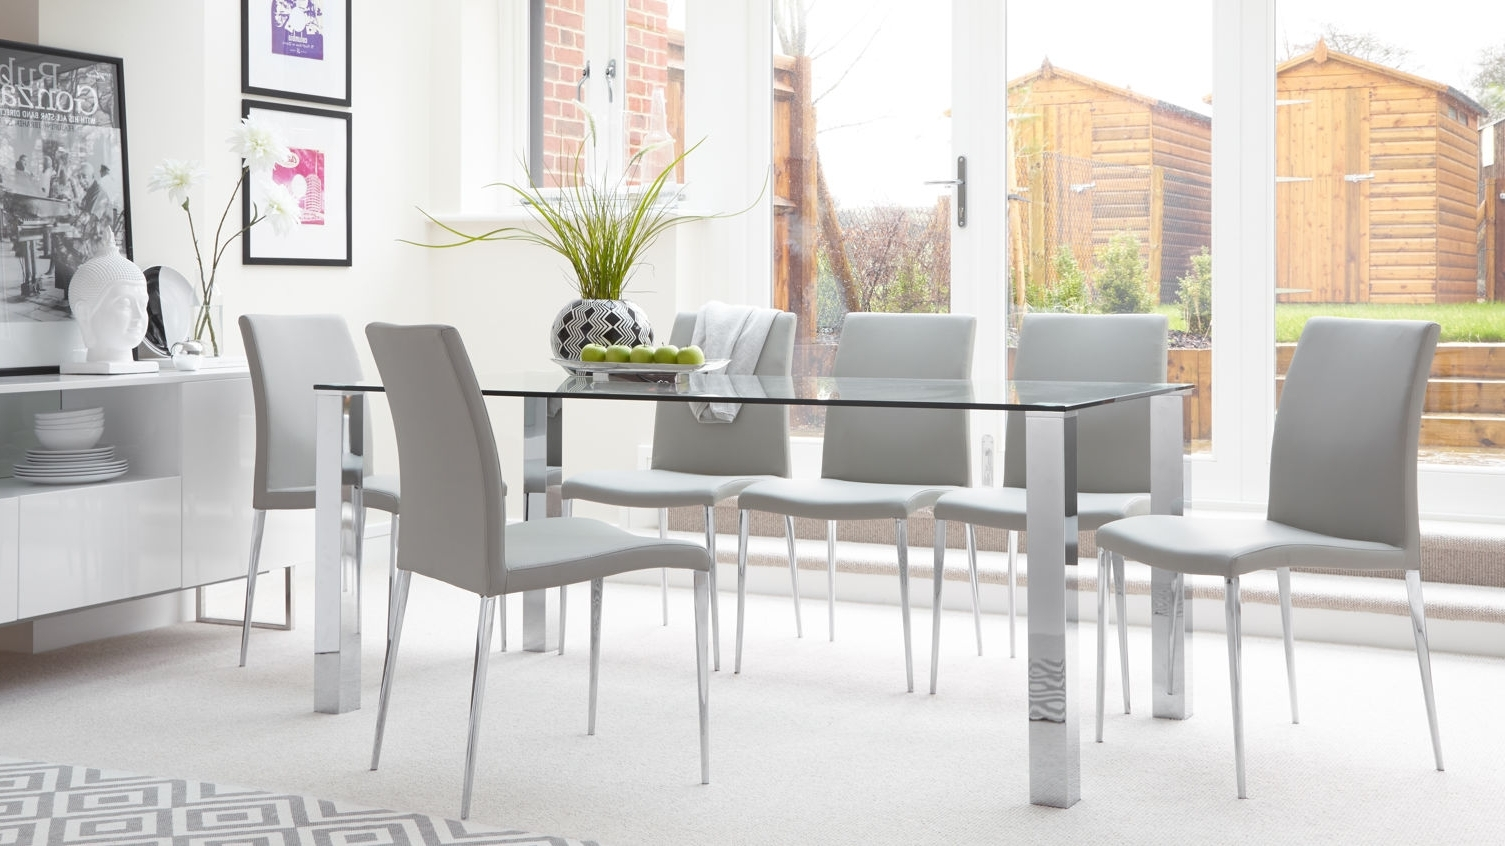 White Dining Tables 8 Seater Regarding Favorite Glass Top Dining Table With 8 Chairs – Glass Decorating Ideas (View 16 of 25)